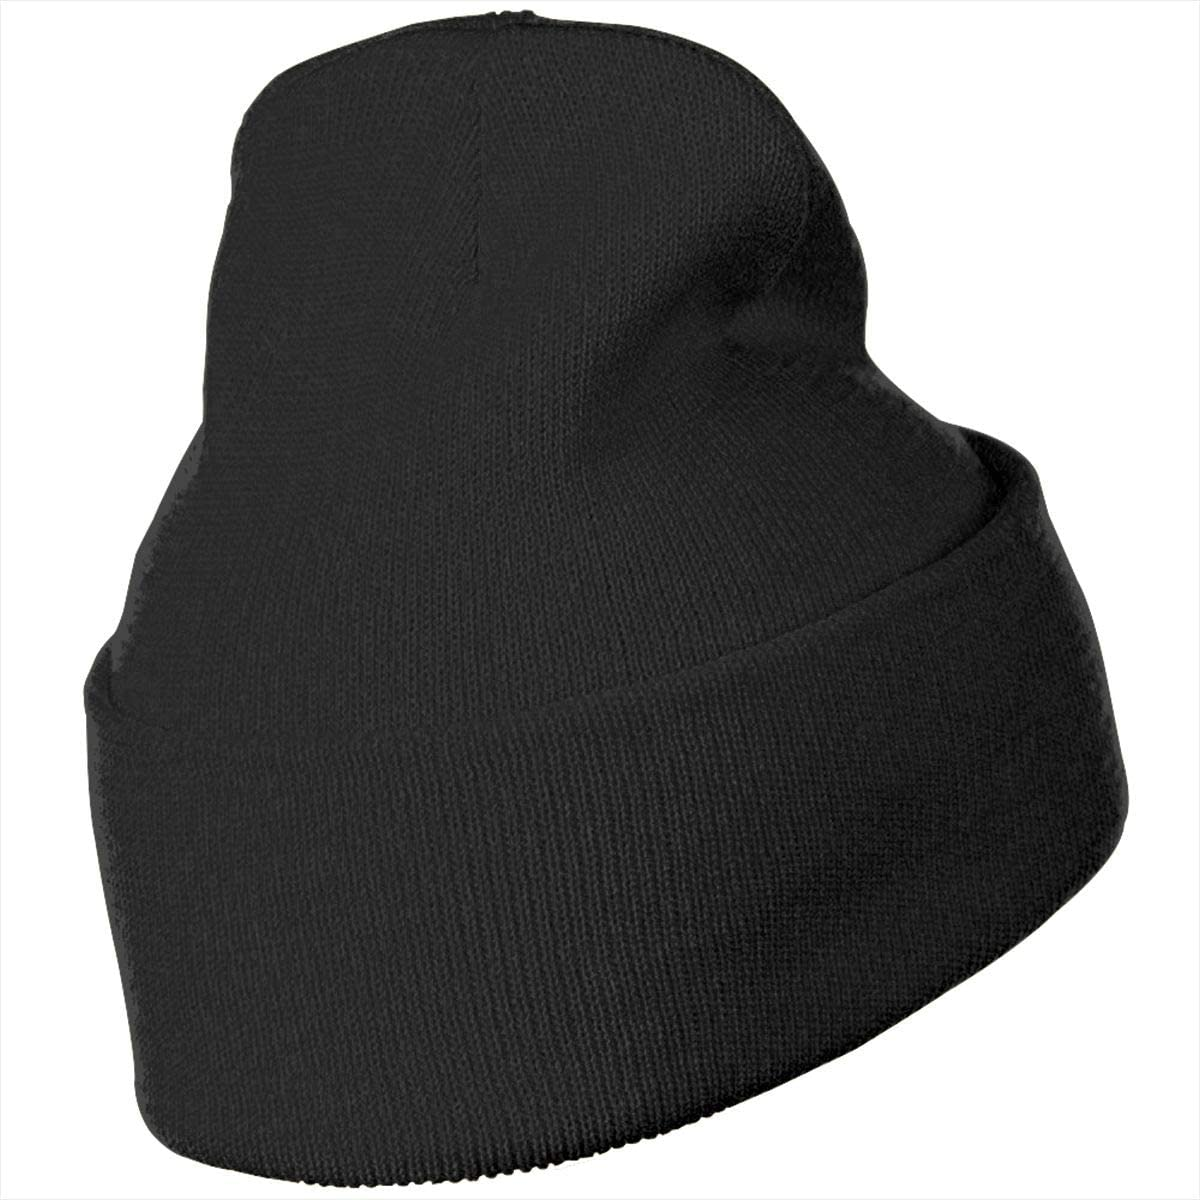 COLLJL-8 Men /& Women El Paso Strong Outdoor Fashion Knit Beanies Hat Soft Winter Knit Caps